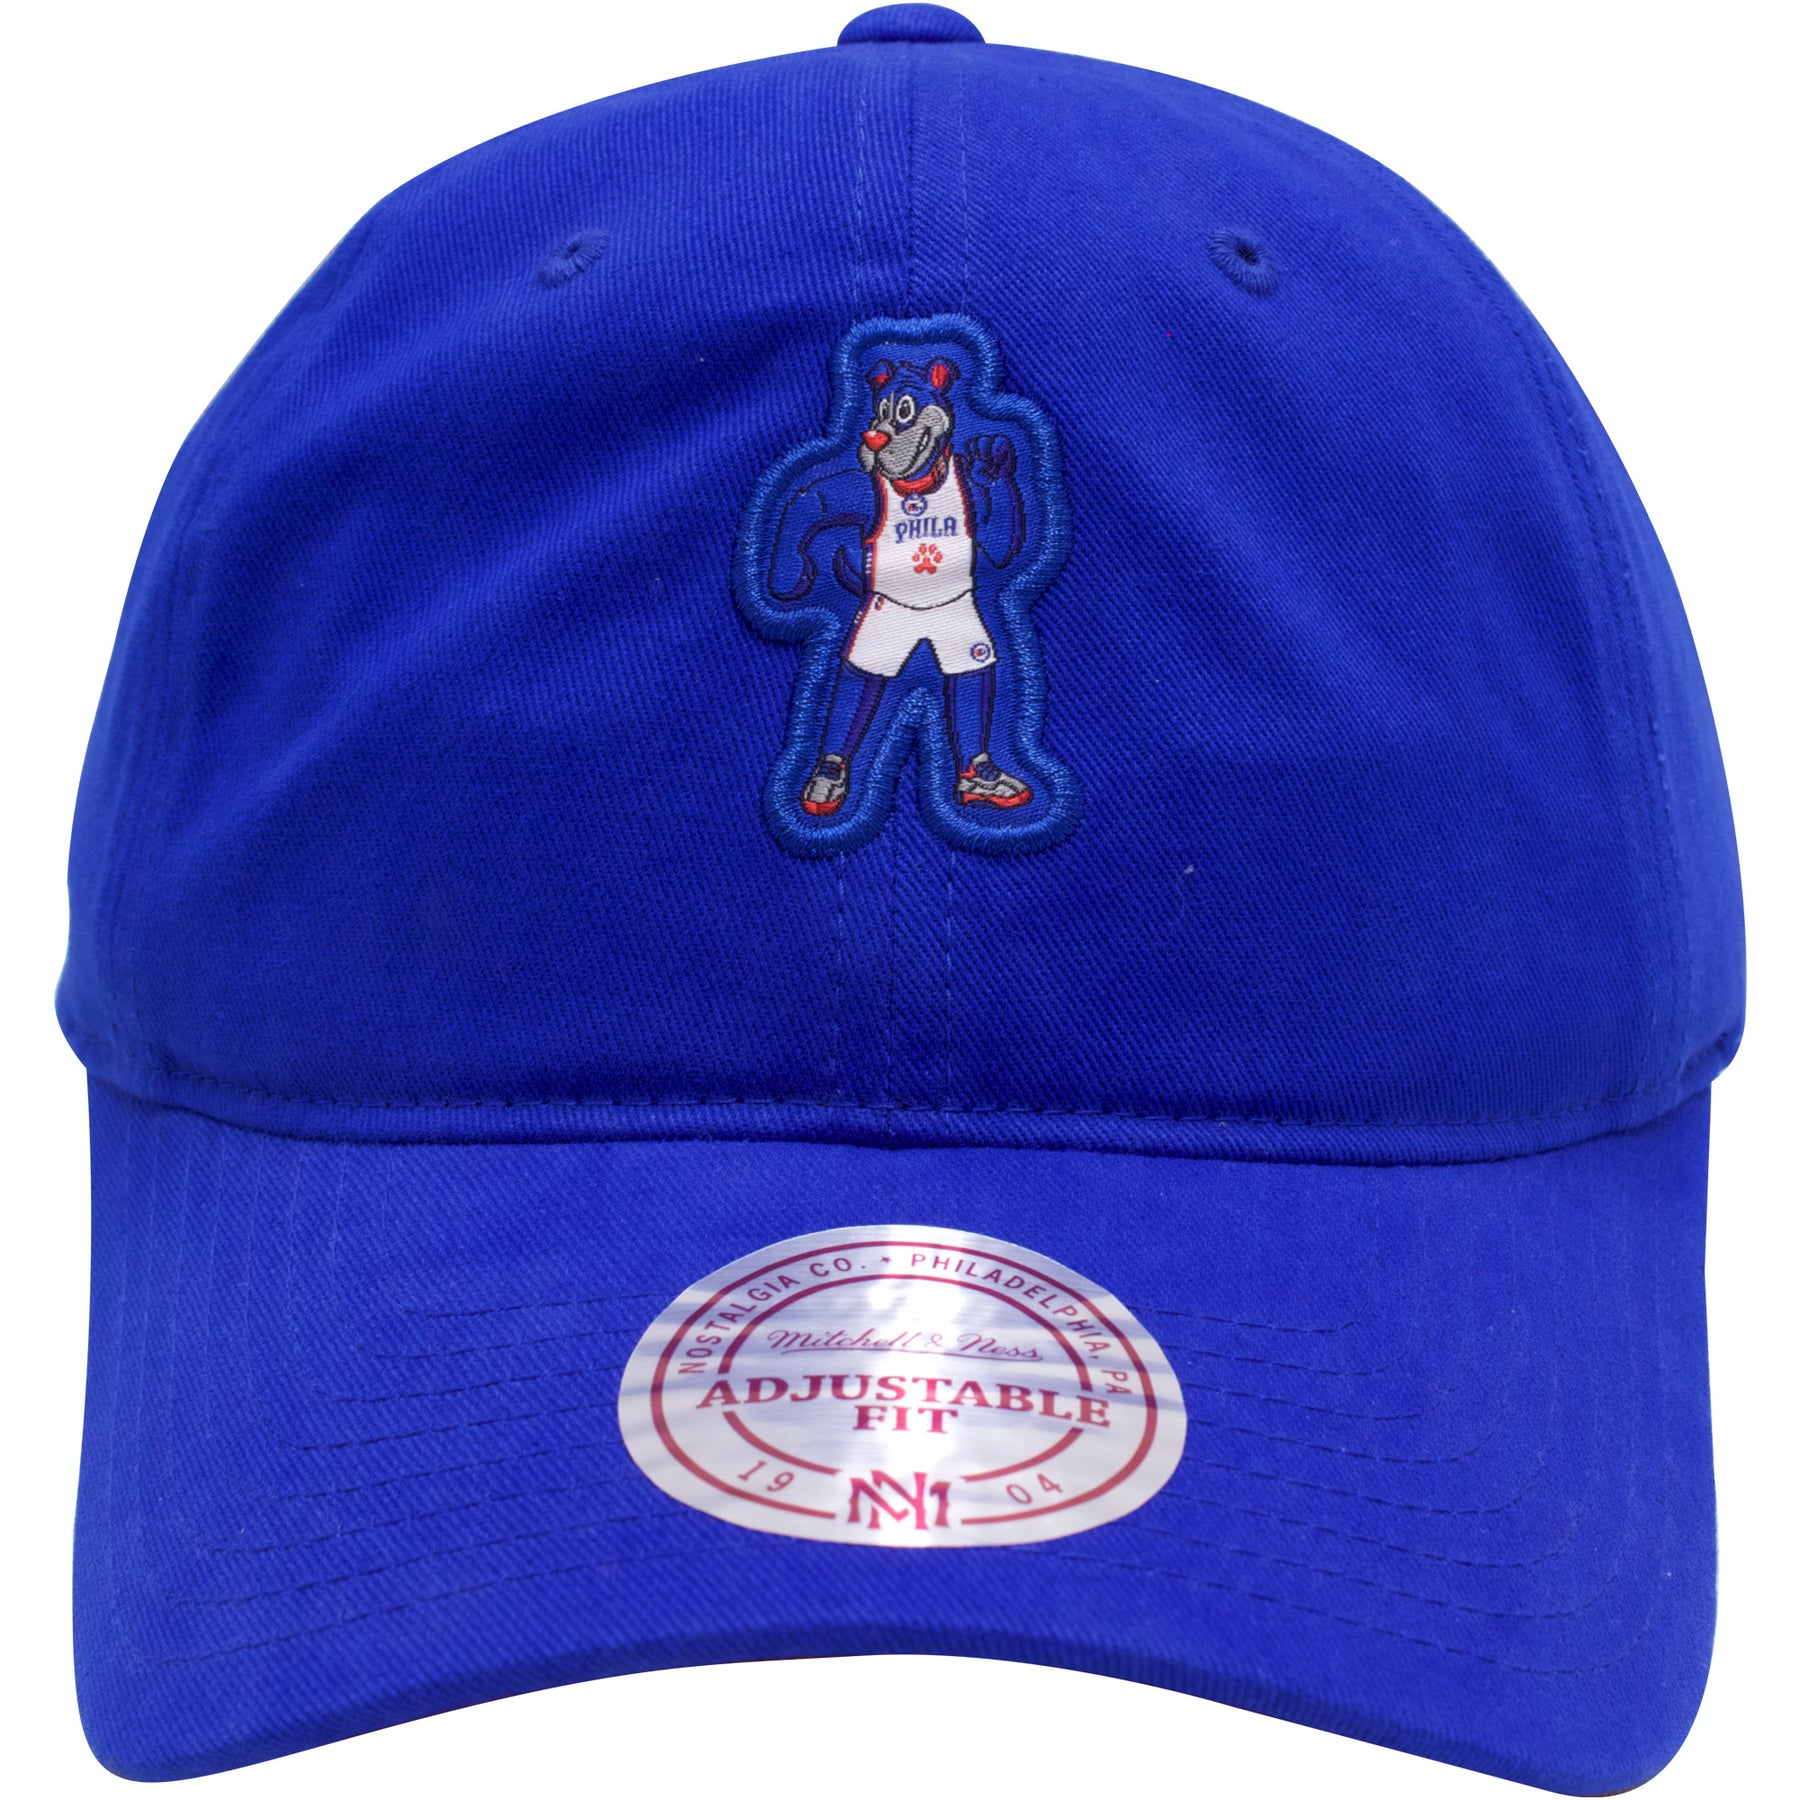 eb56c5f9c the philadelphia 76ers mascot dad hat has franklin the dog on the front